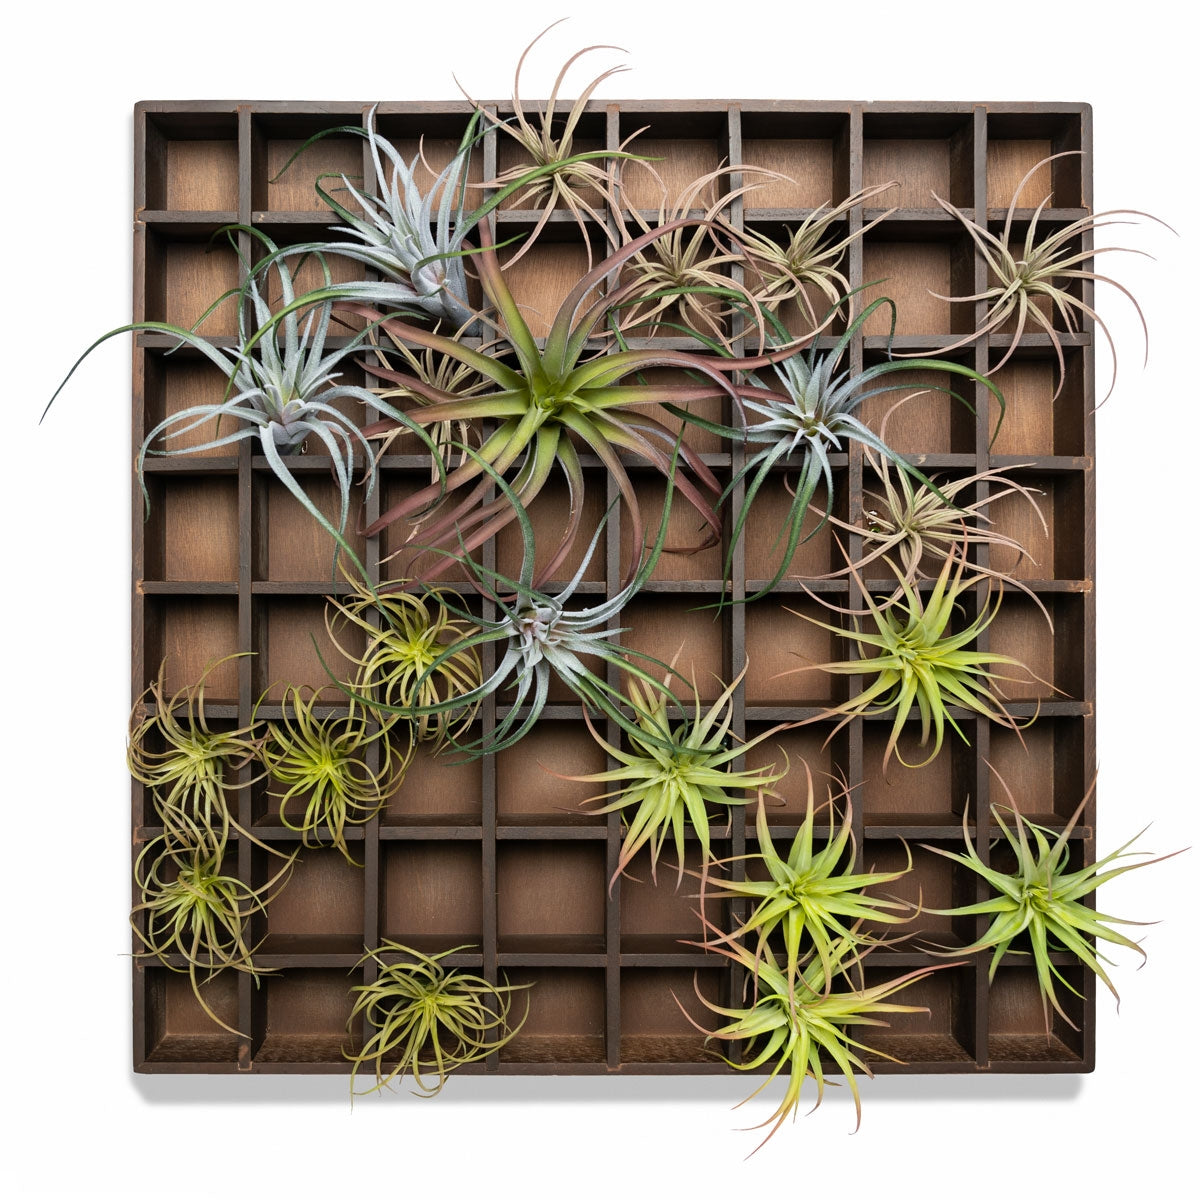 Green Wall, Pixelated Air Plants, 64 Compartments